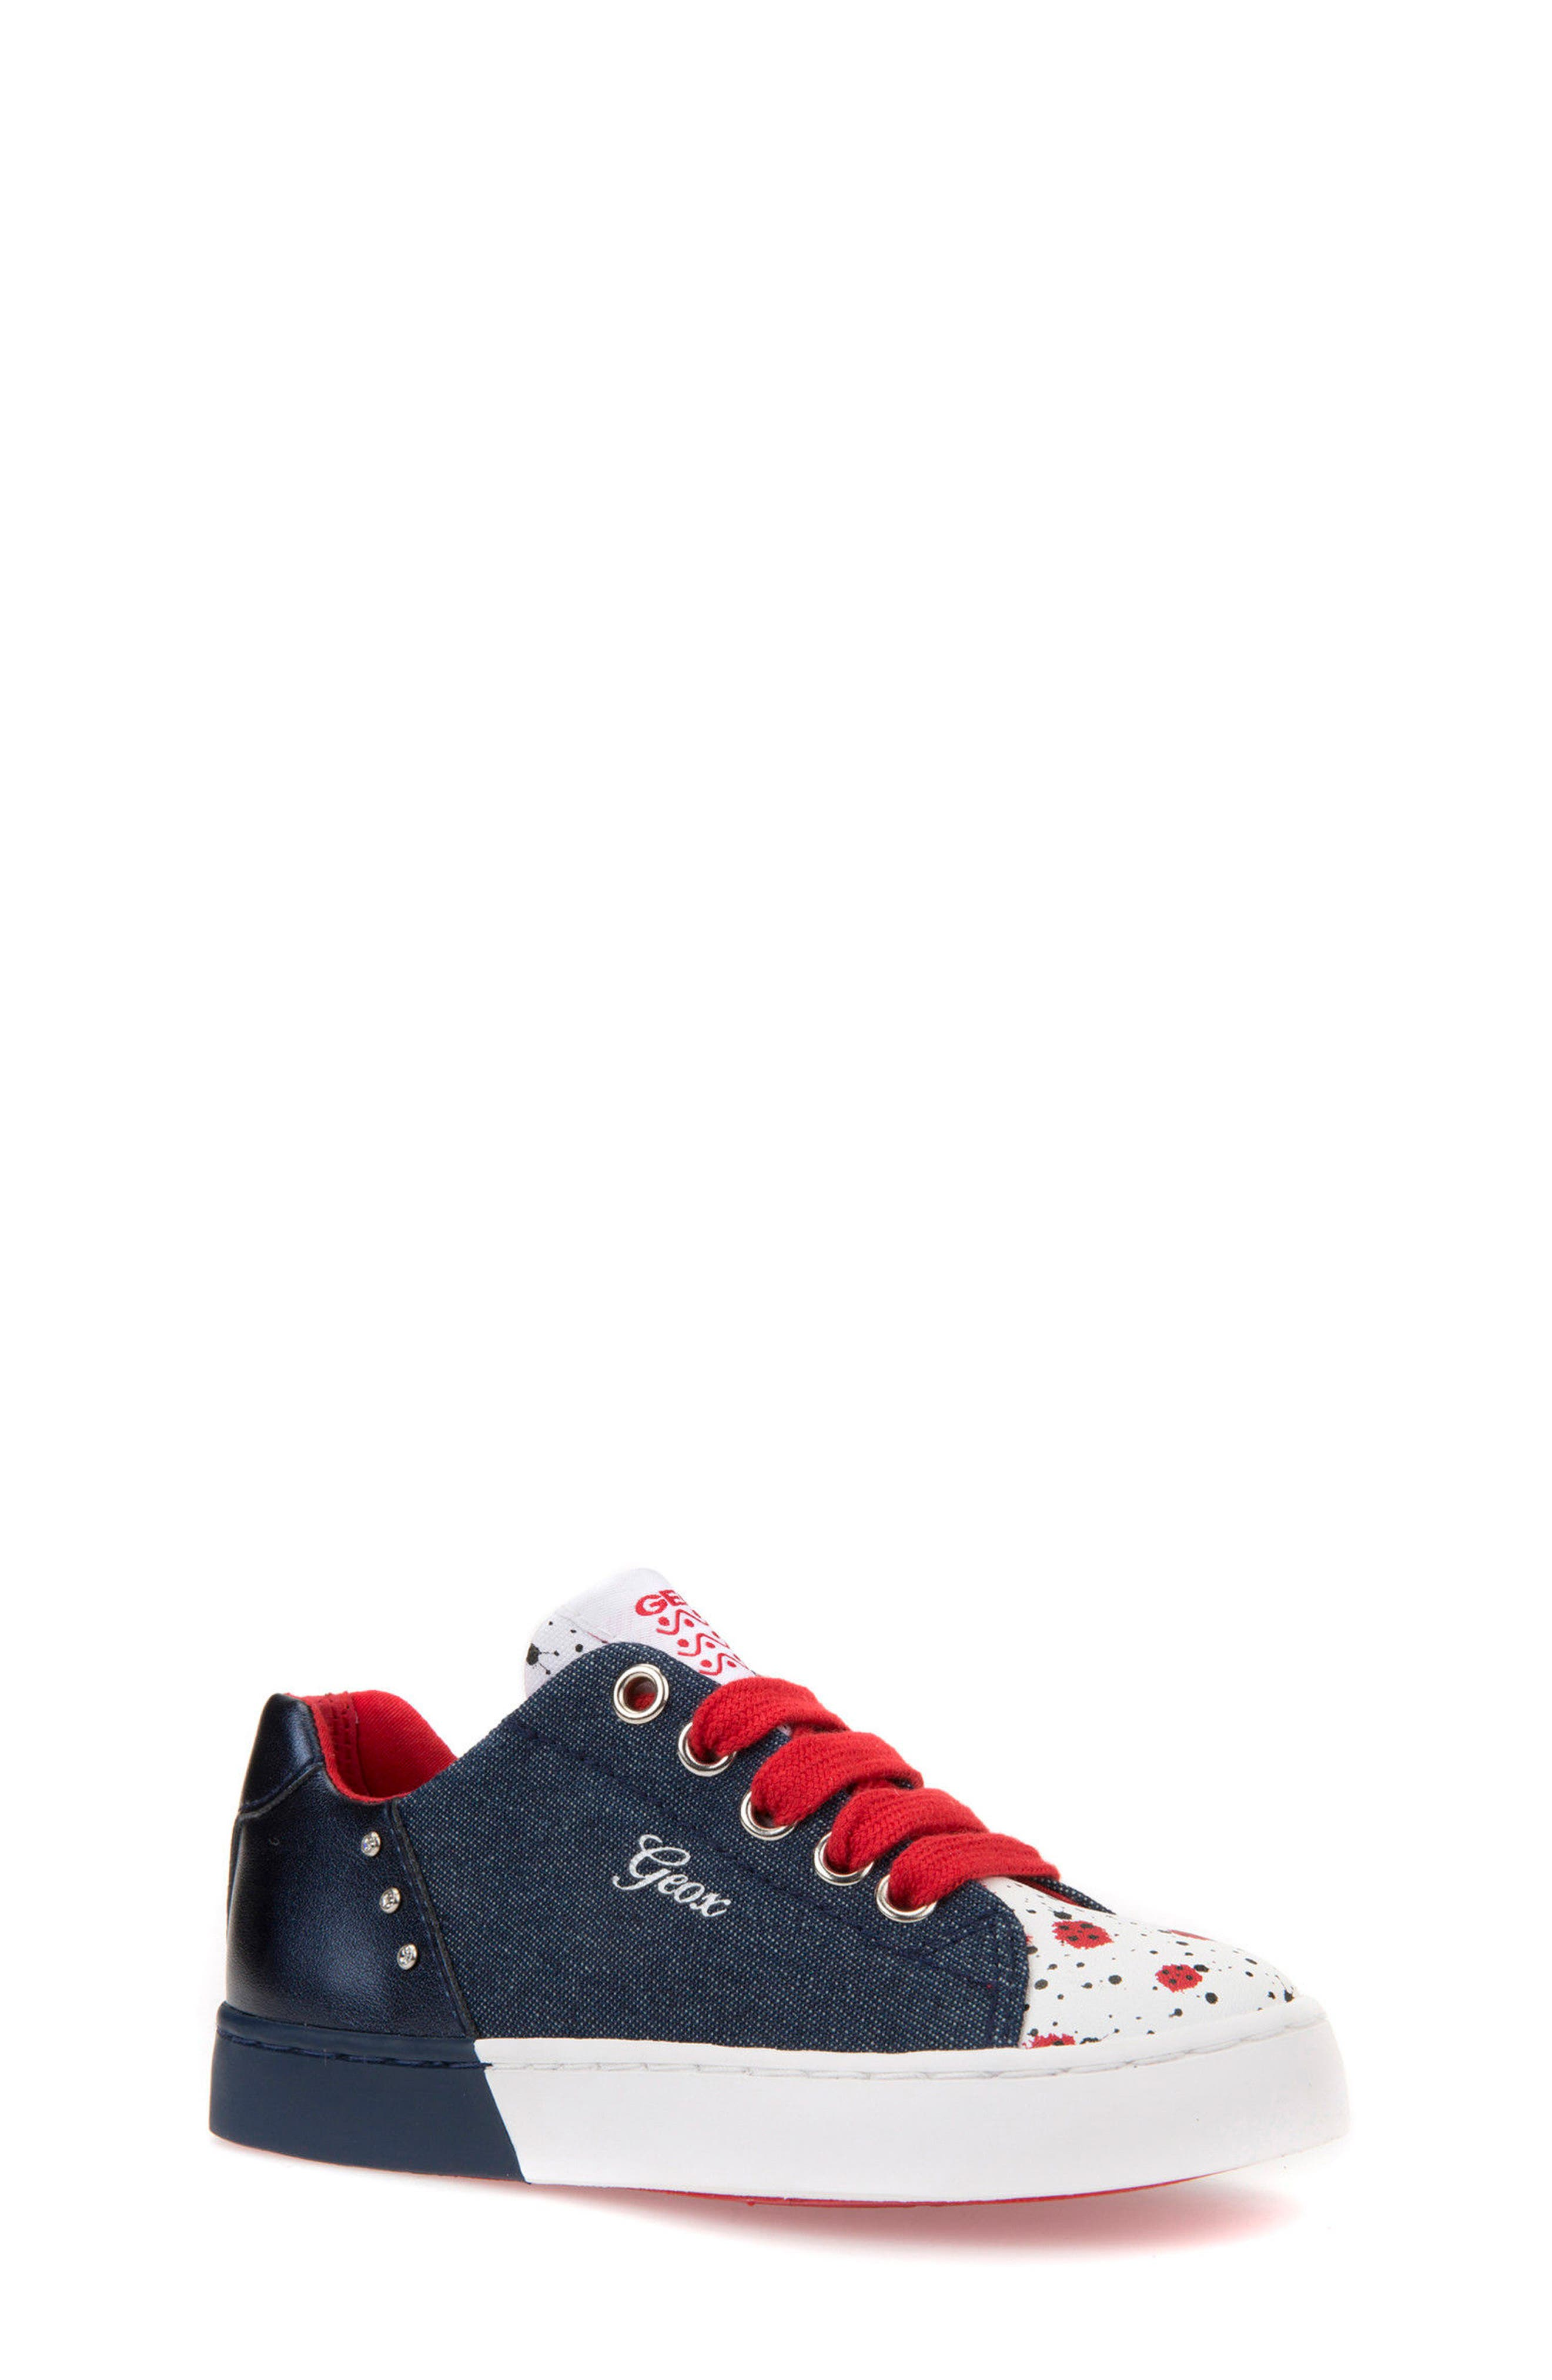 Geox Ciak Low Top Sneaker (Toddler, Little Kid & Big Kid)